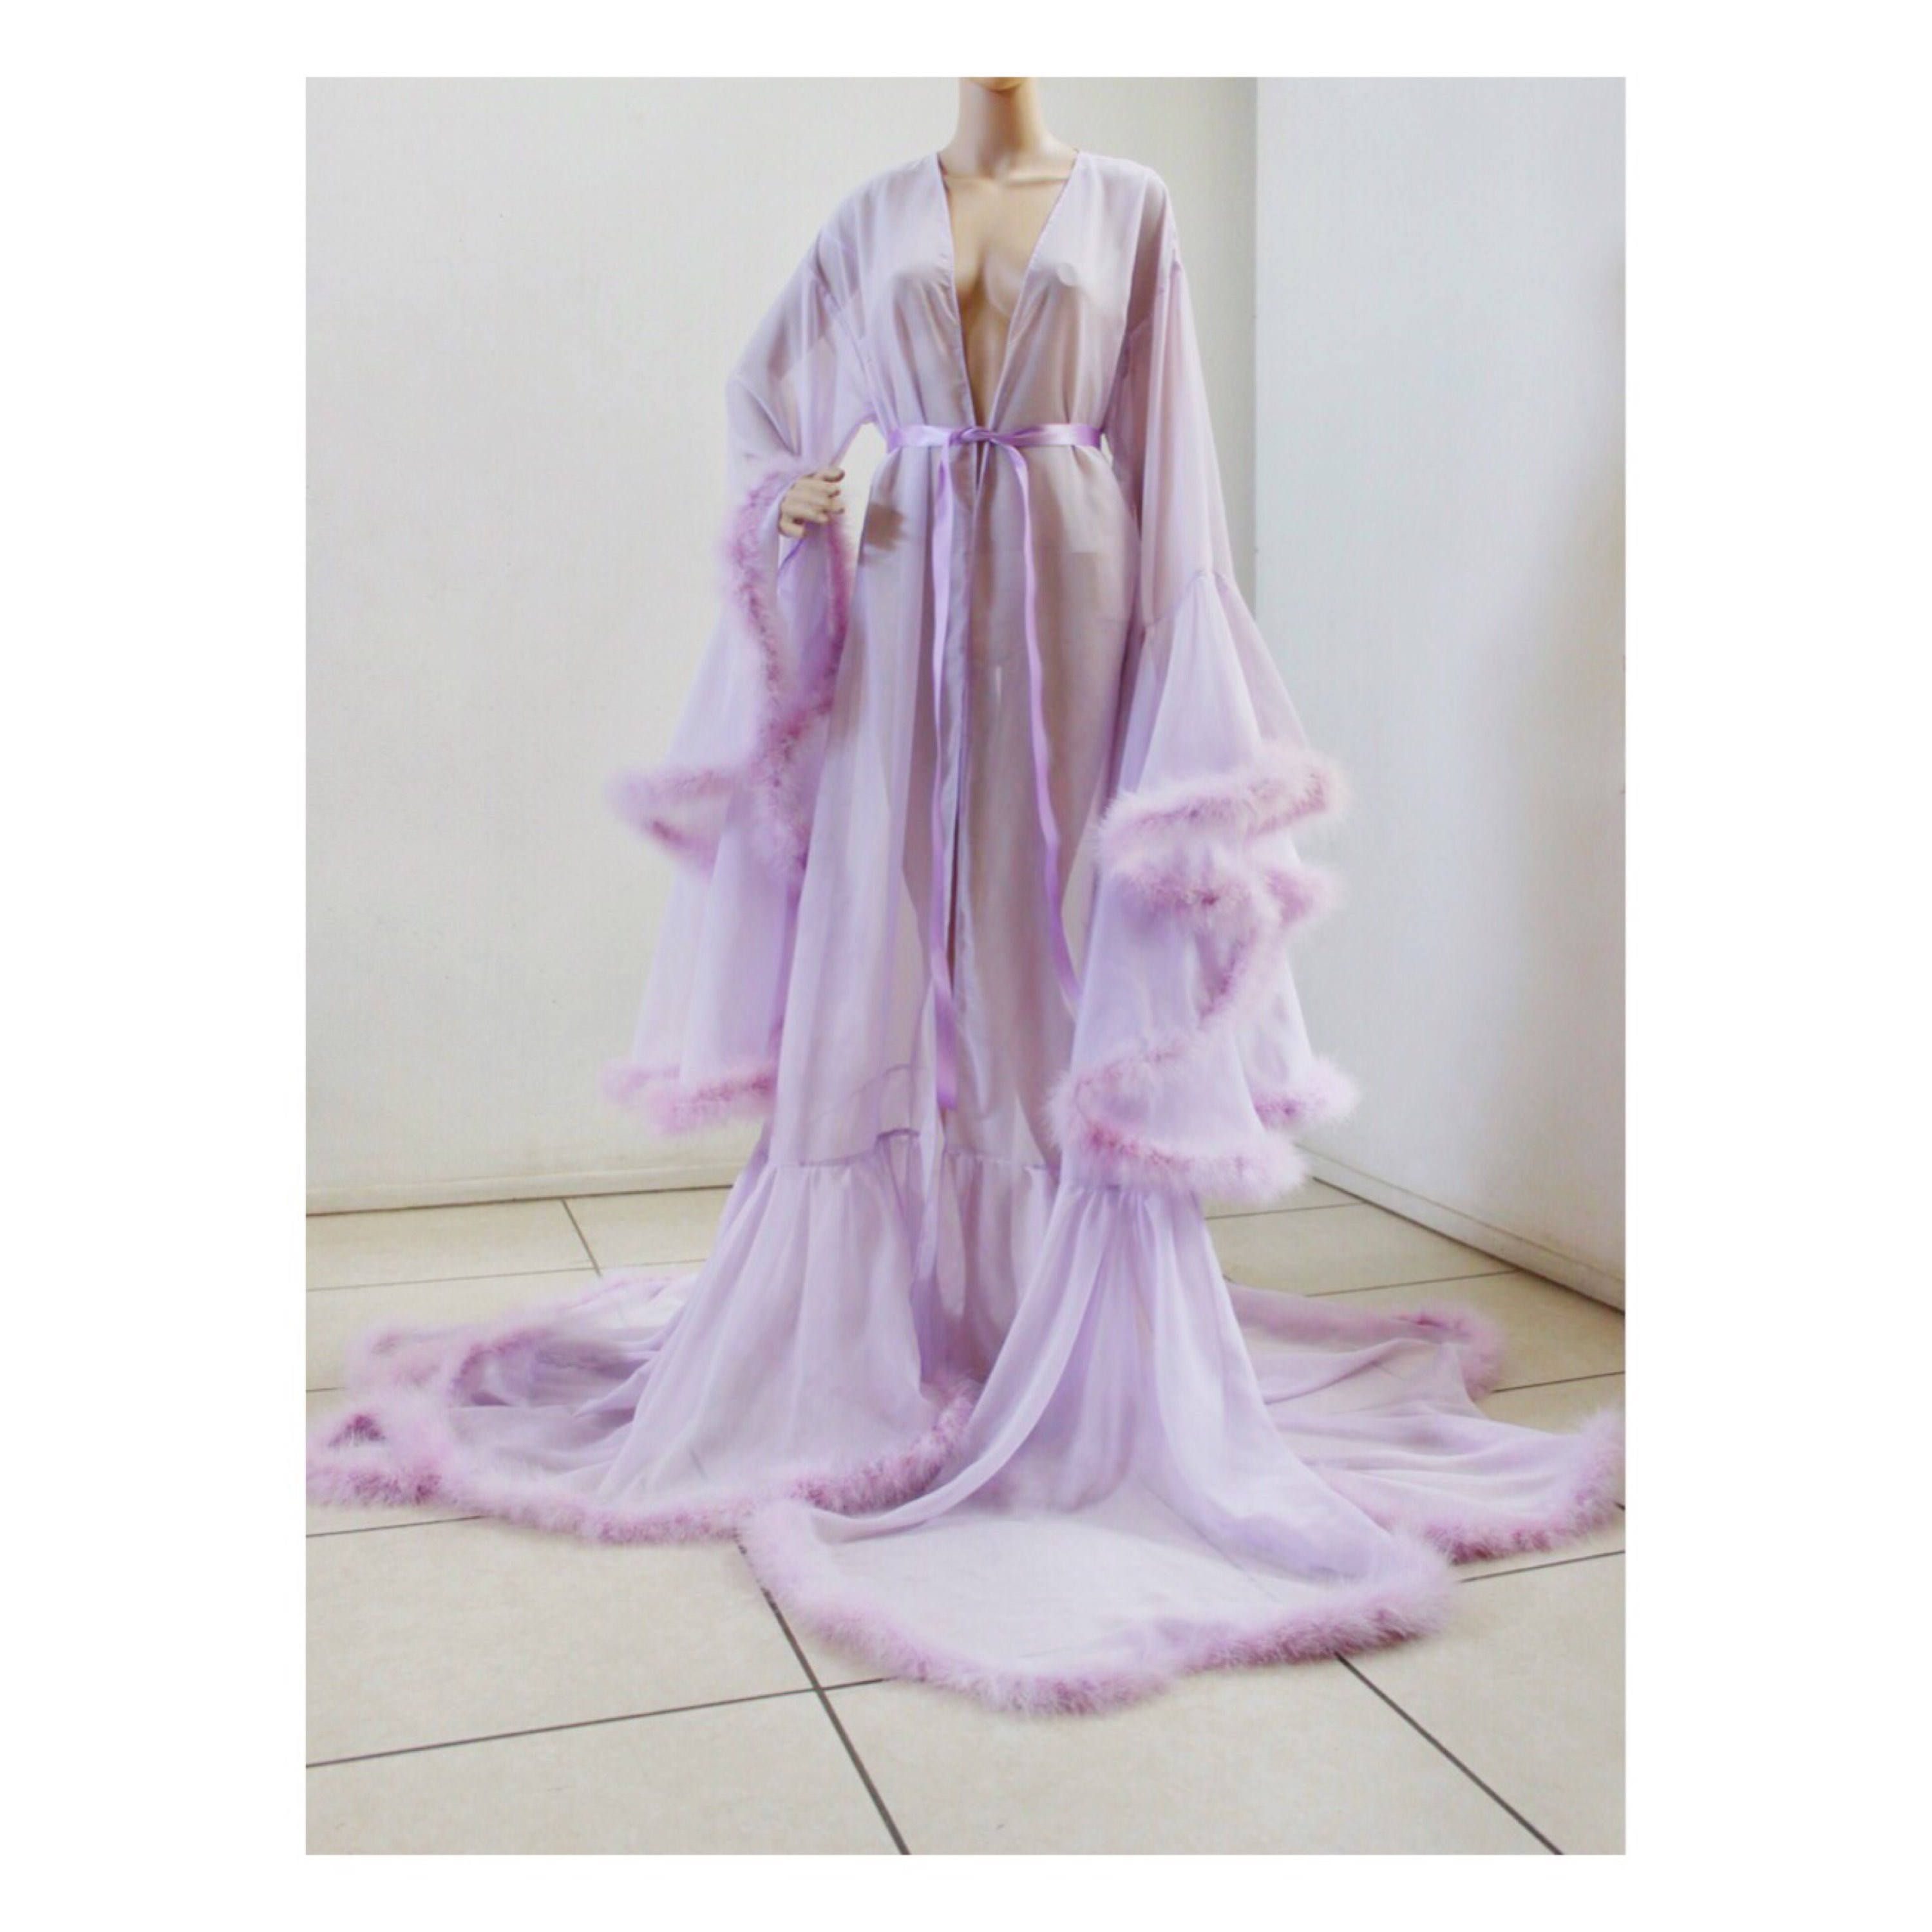 6c0f6ef4d Luxury Sheer Fur Robe Lingerie 'Lavender.' Feather trim robe with satin ties.  High quality lingerie